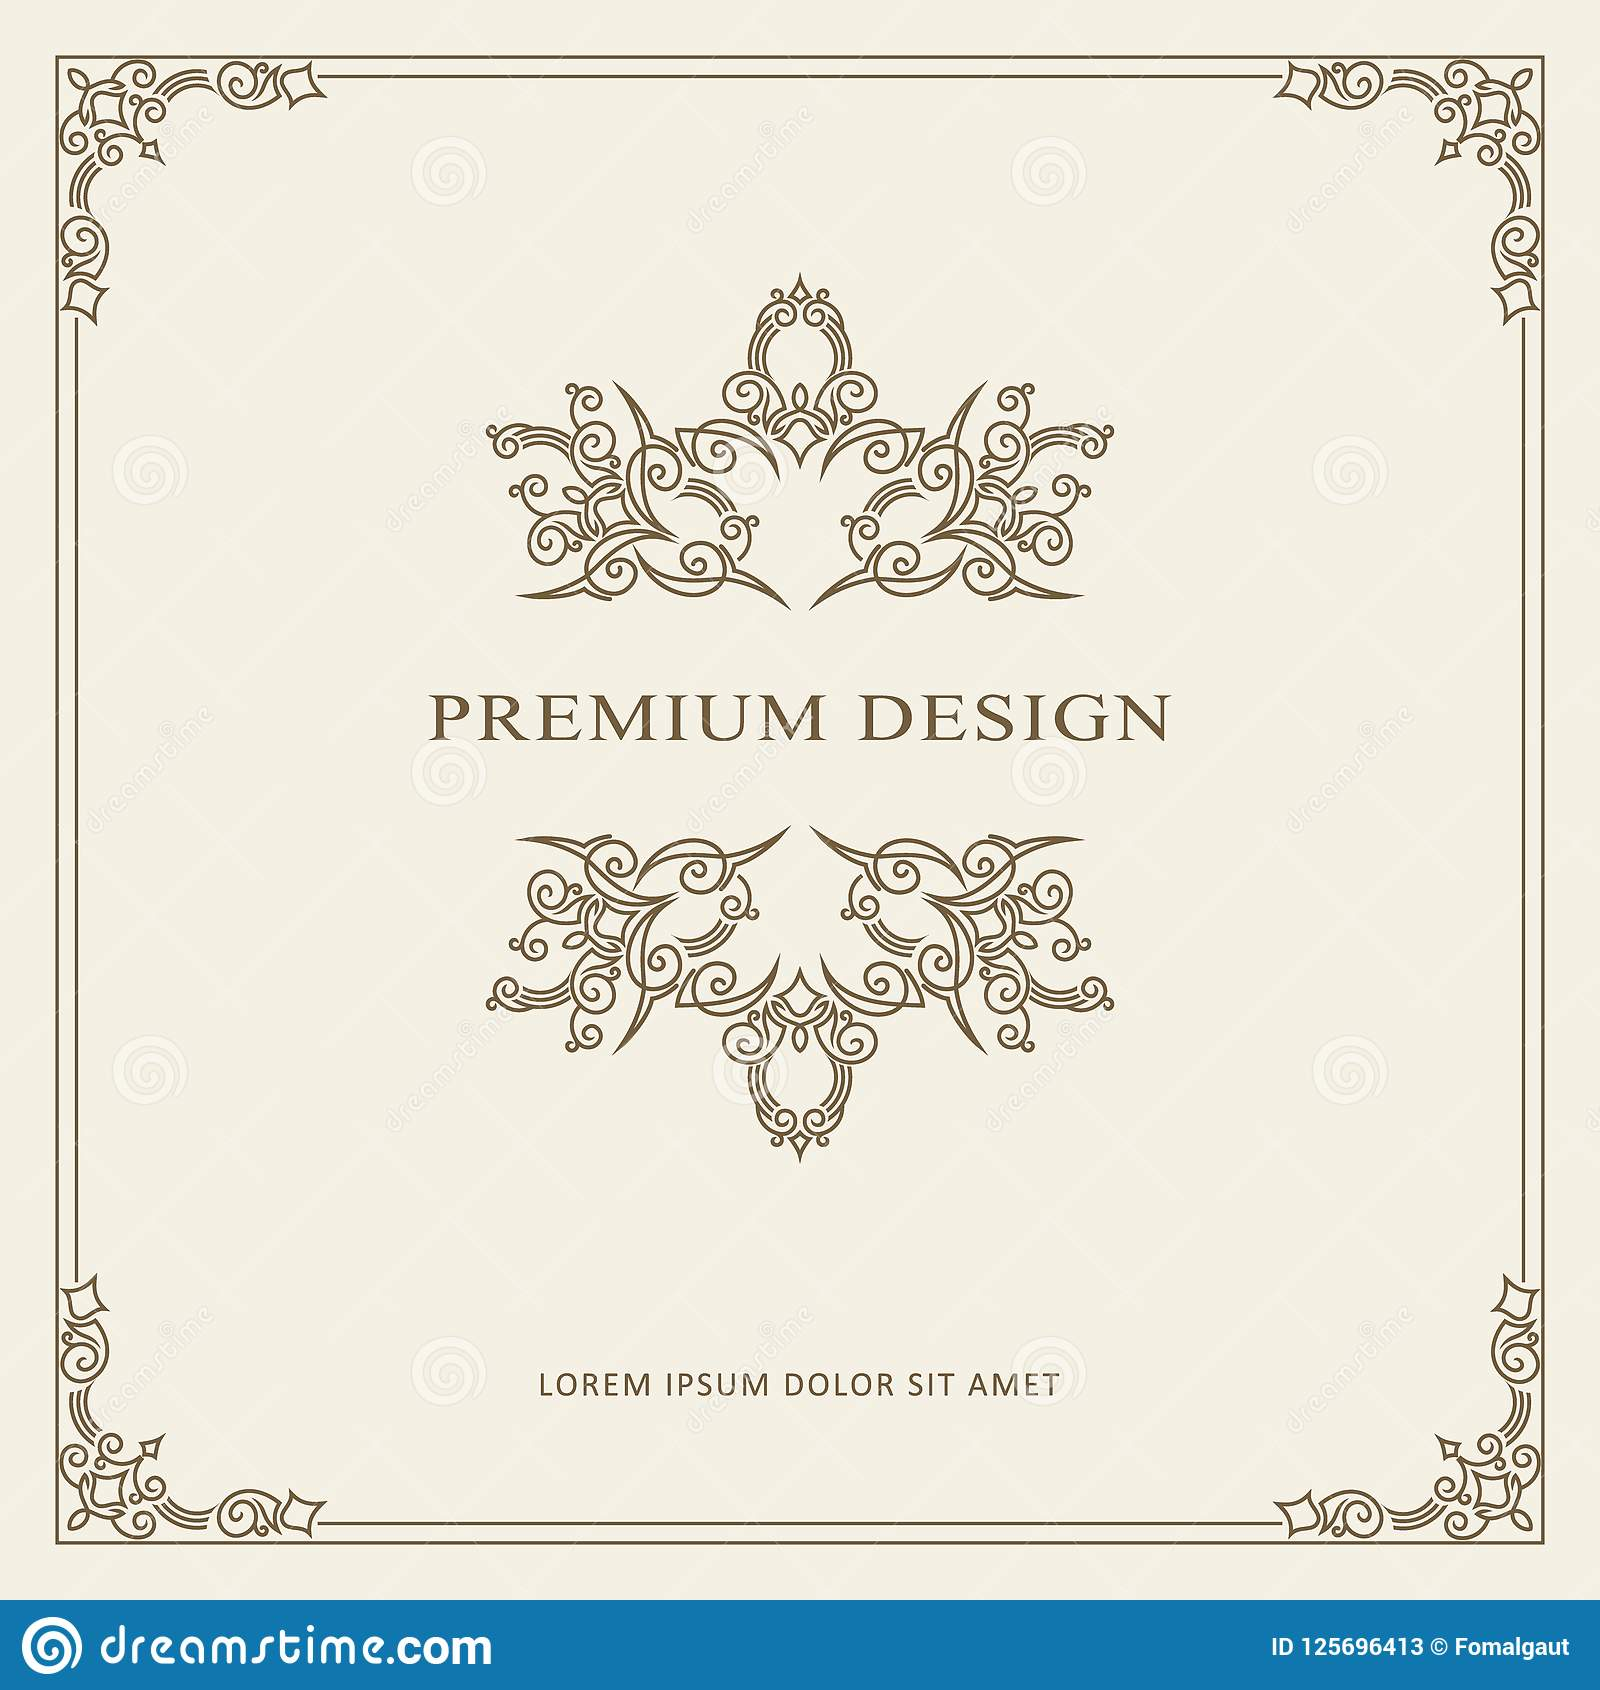 Vintage Ornament Greeting Card Vector Template. Retro Luxury Invitation, Royal Certificate. Flourishes frame. Vector Background